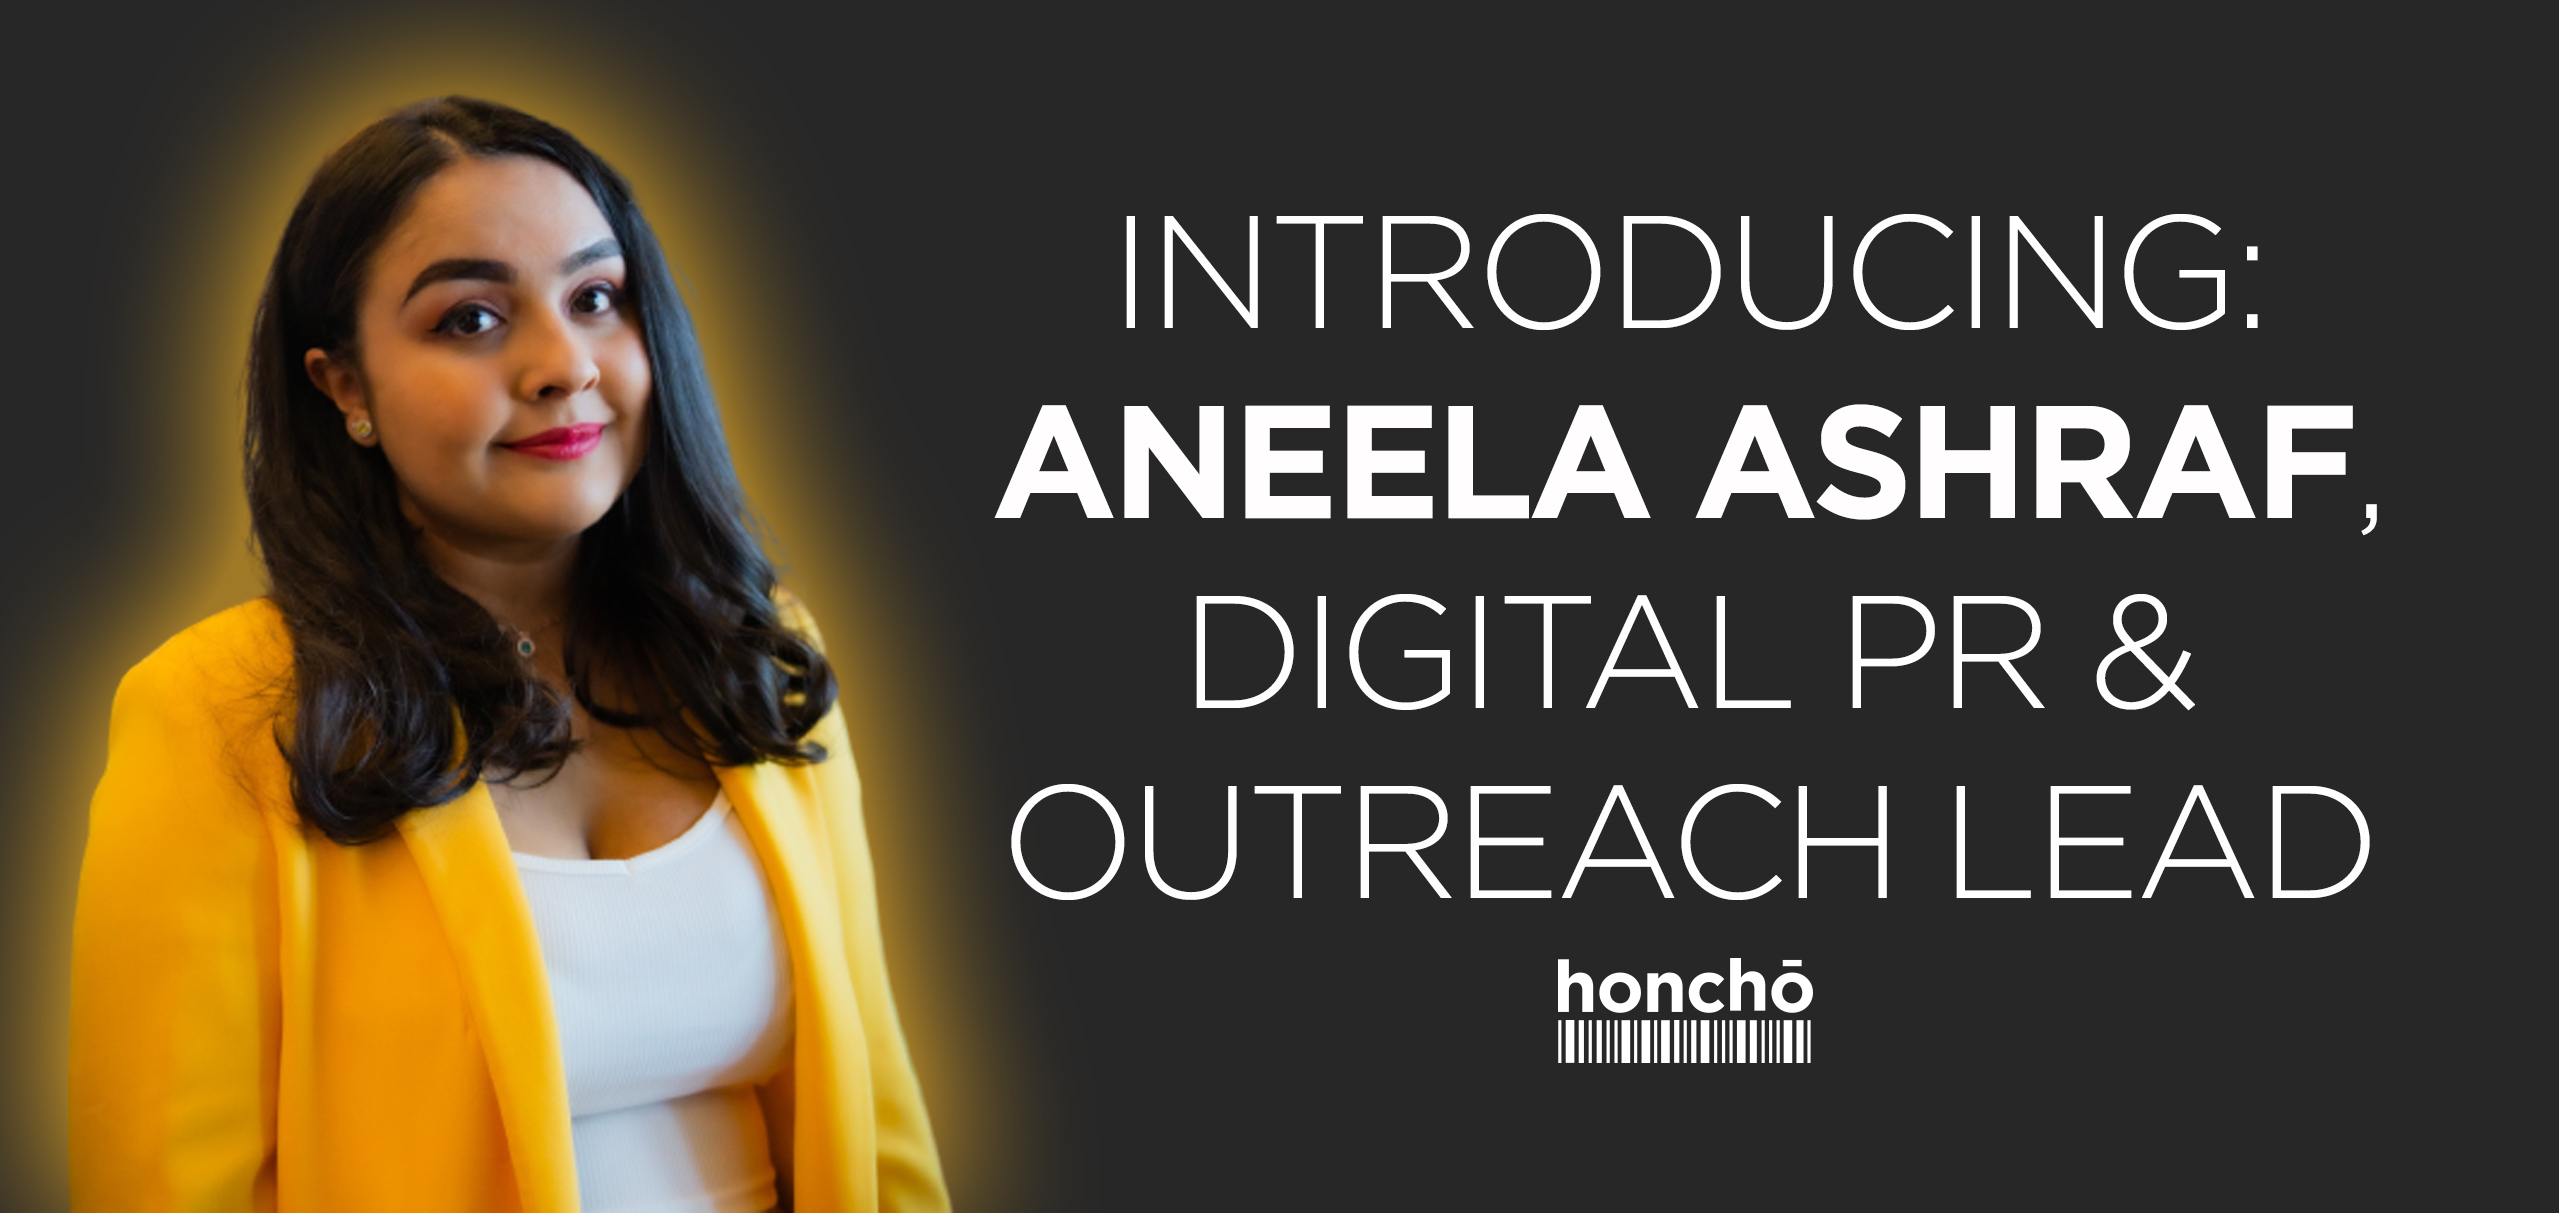 Q&A with Aneela Ashraf, PR & Outreach Lead